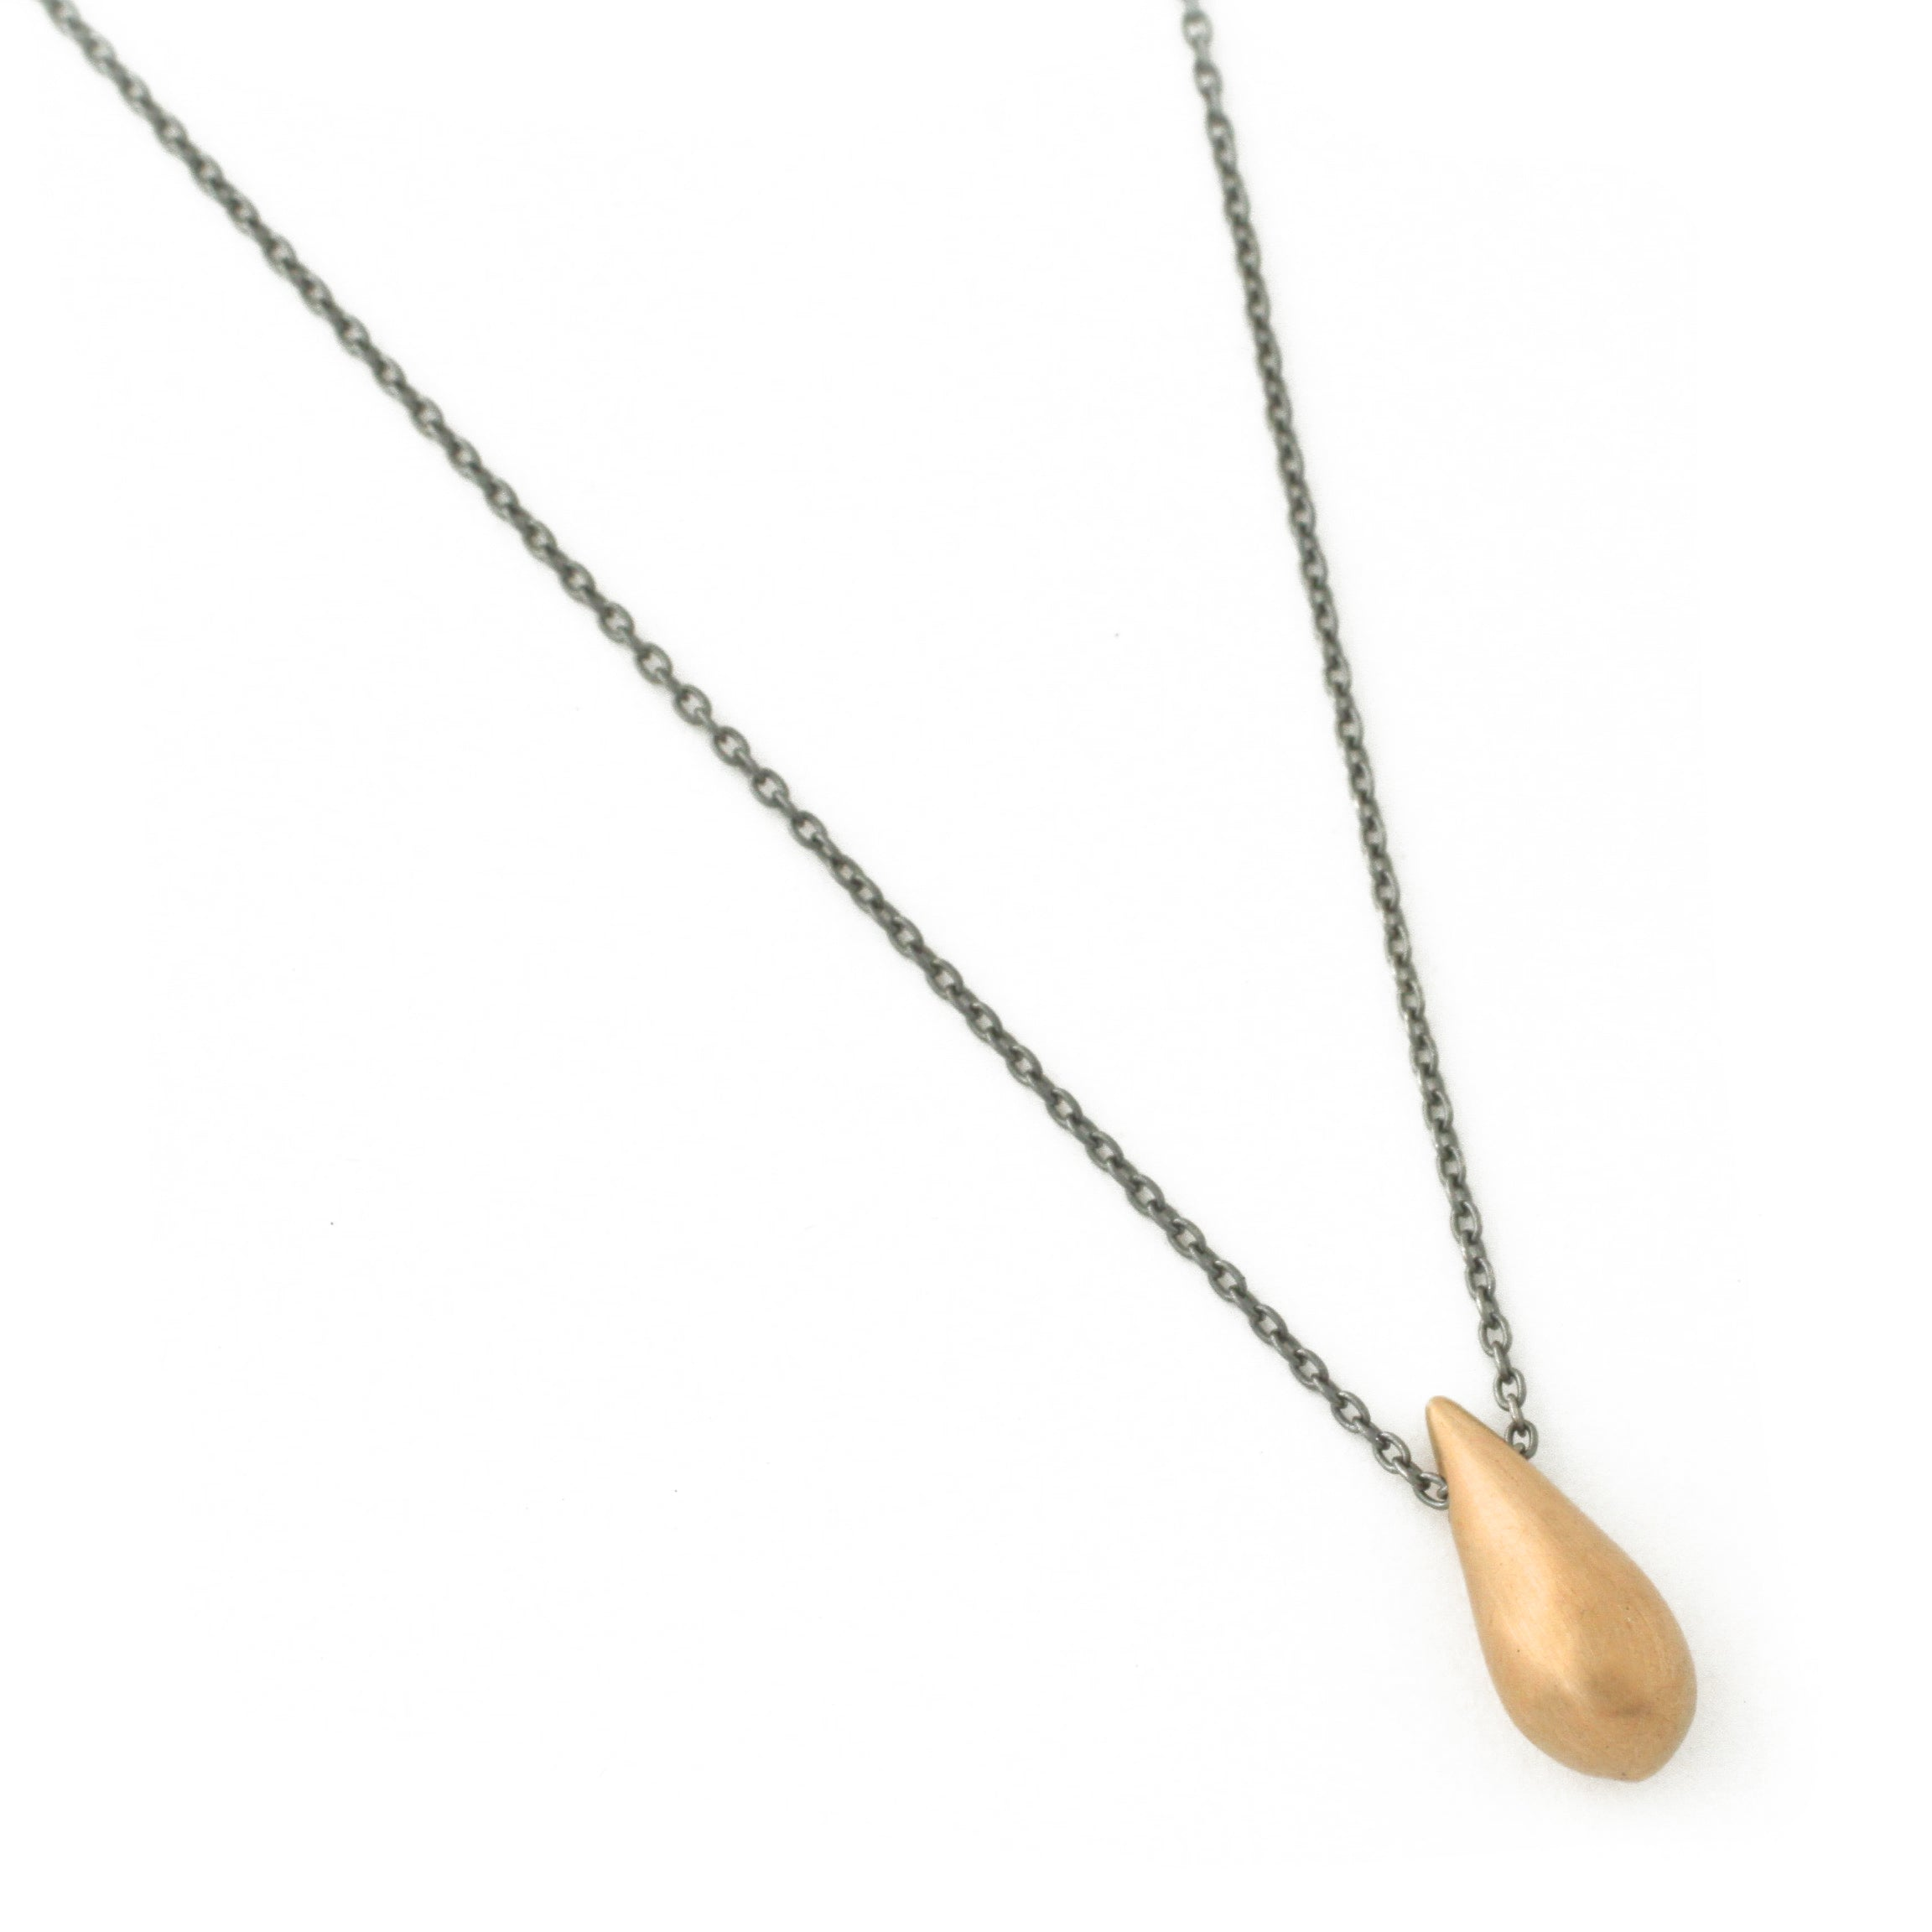 Raindrop Necklace (Large Bronze)